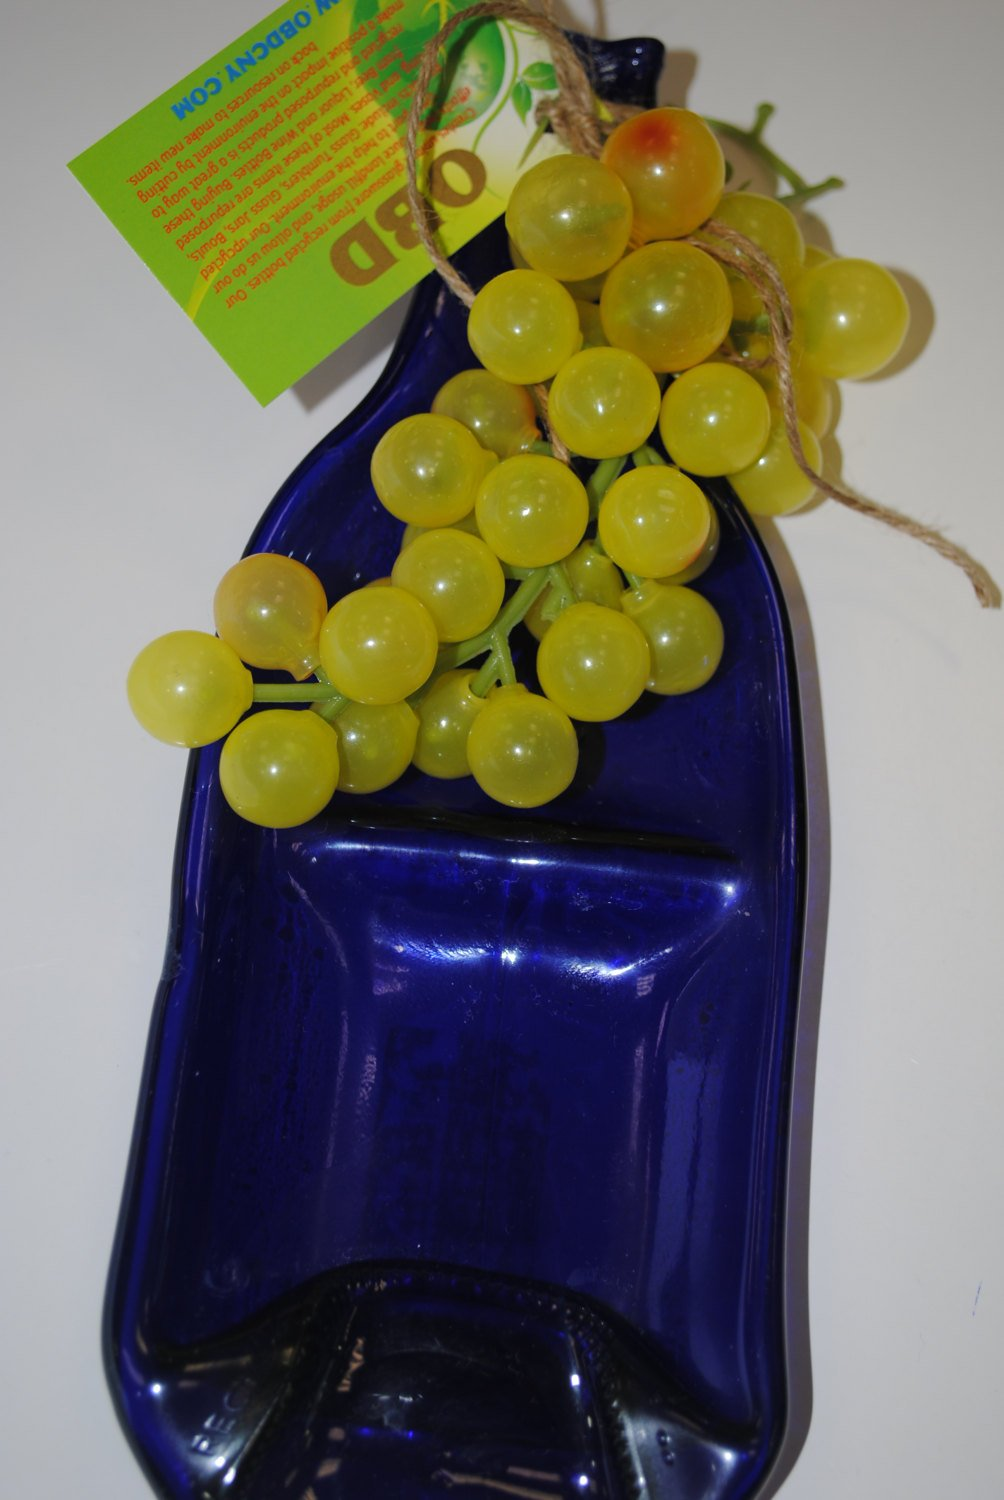 Blue  Flat Melting Wine Bottle, Food Tray Flat Bottle,Melting Bottles.Olga's Treasures